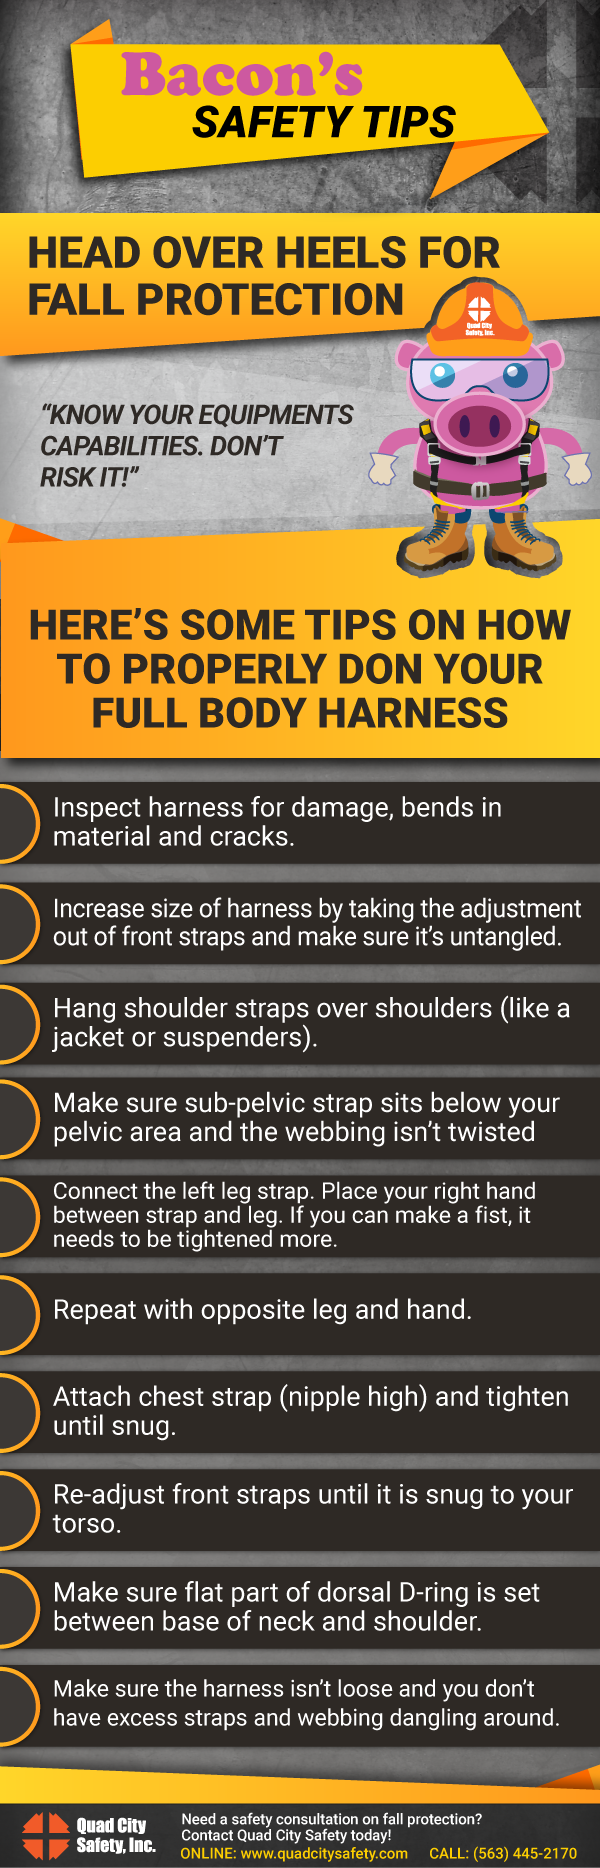 Bacon_Safety_Tips_C3_Harness-V2.png